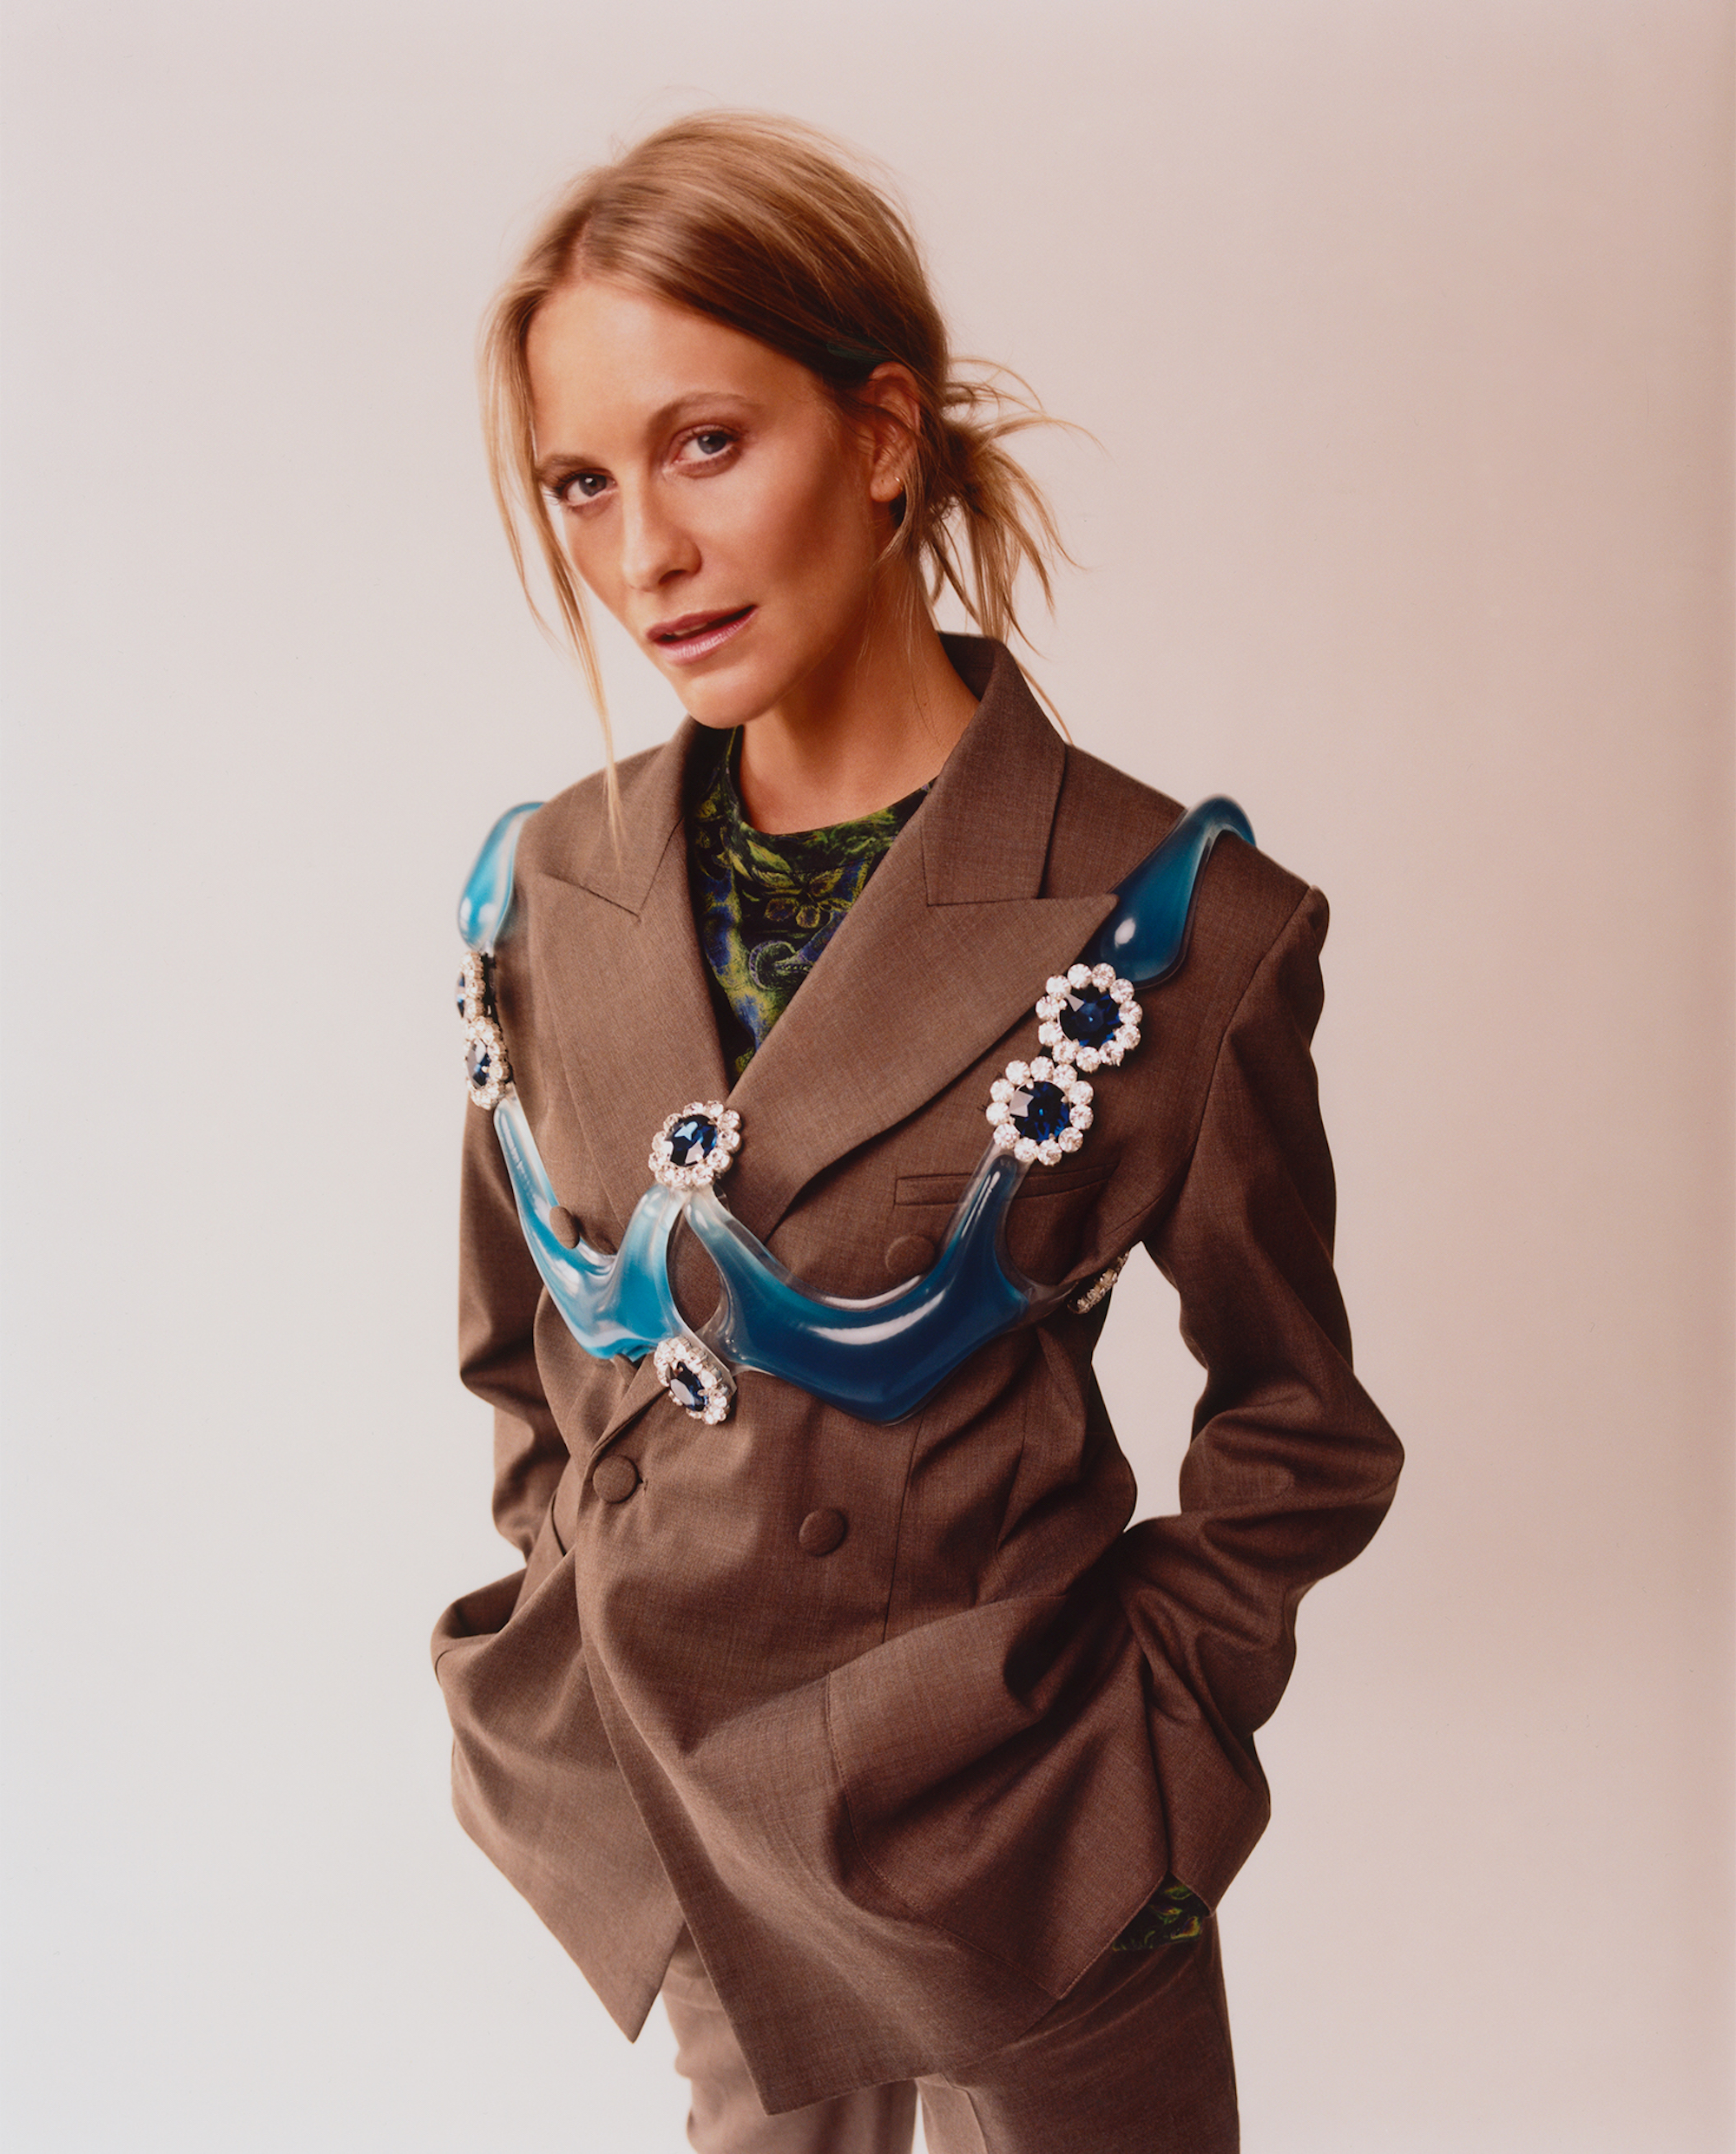 Poppy Delevingne covers Rollacoaster suit harness